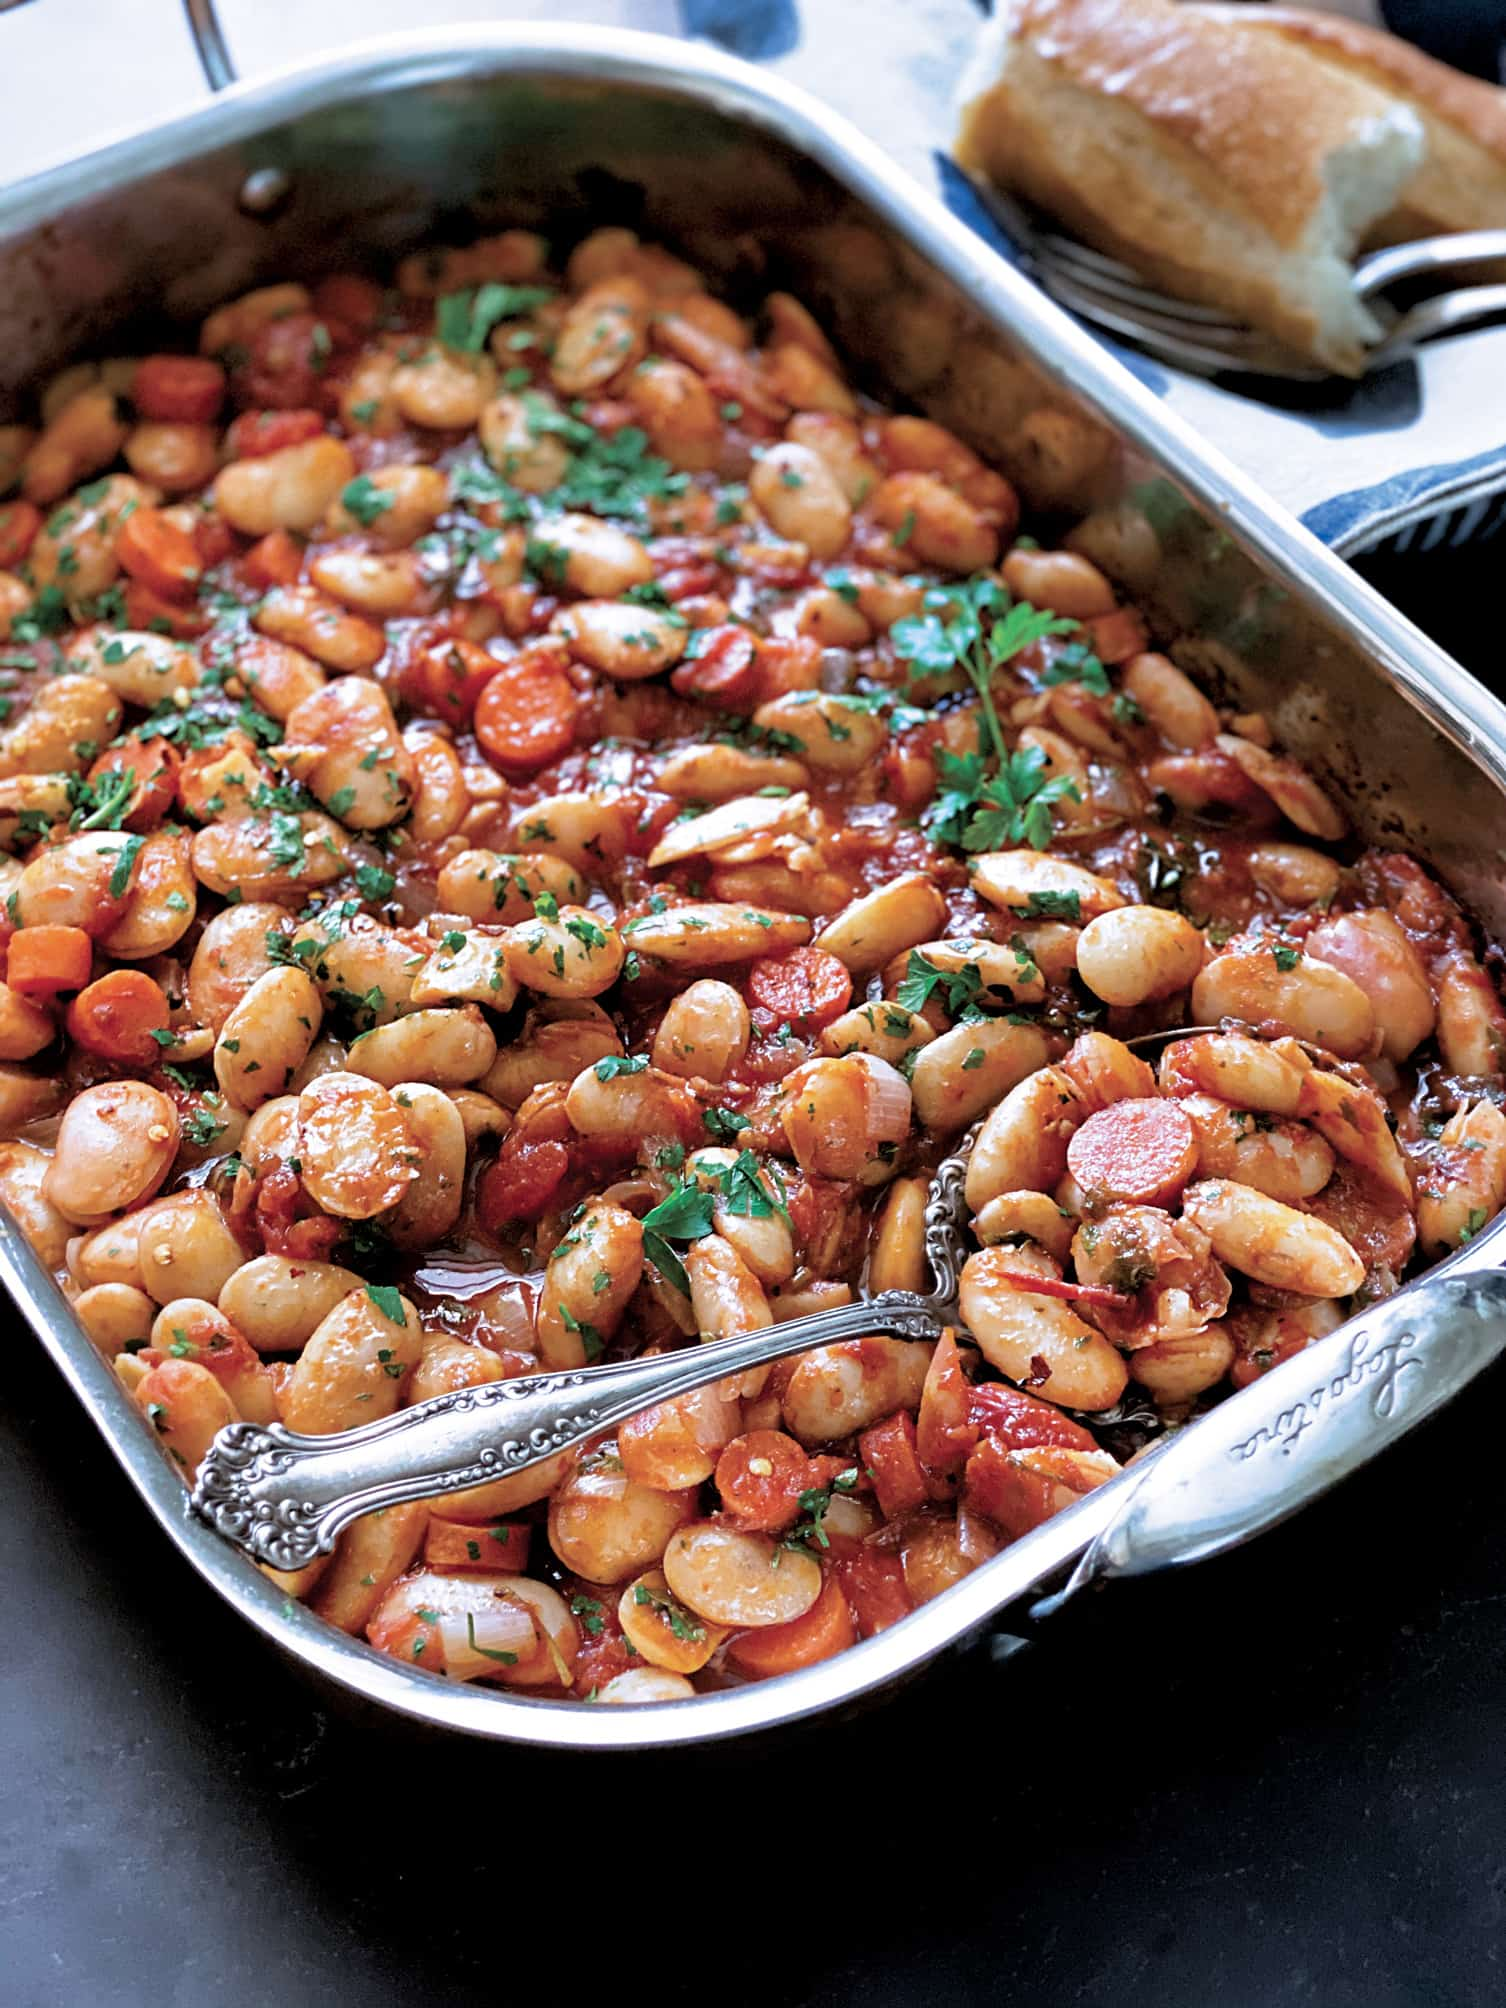 A large baking pan with cooked gigantes beans, carrots, fresh parsley. A napkin with serving utensils and pieces of bread on the side.